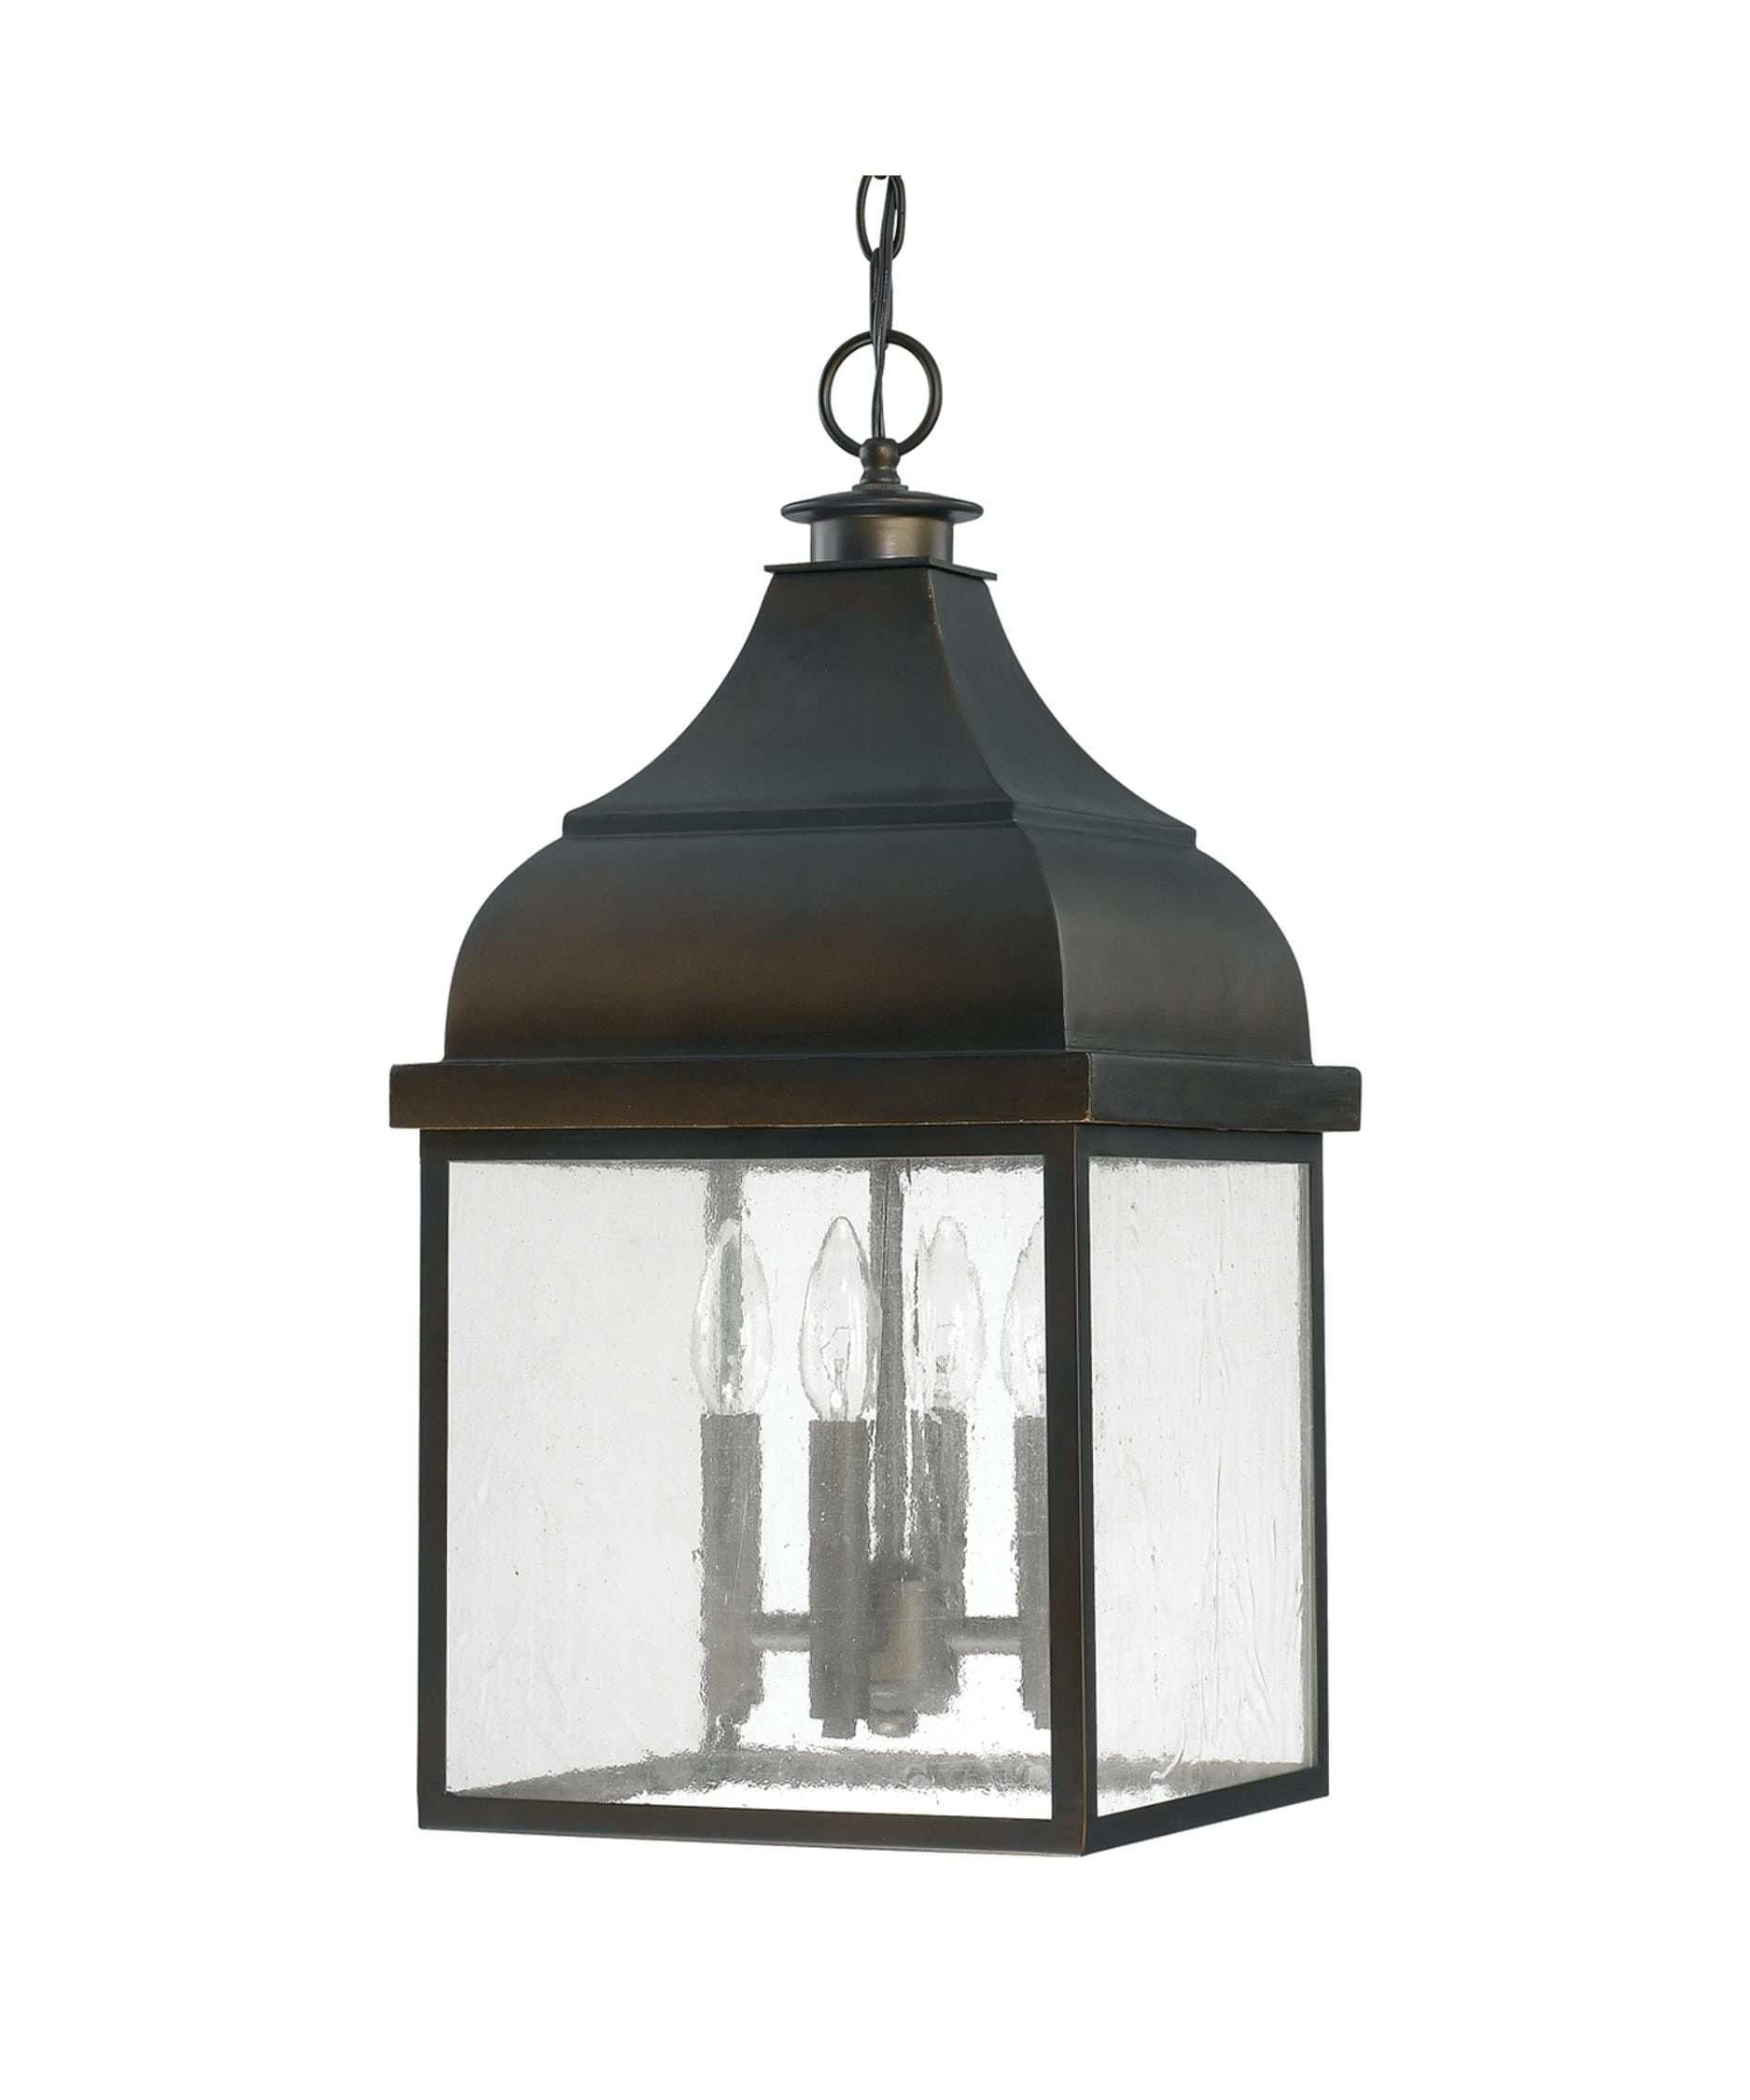 Preferred Wayfair Outdoor Hanging Lights Regarding Wayfair Ceiling Light Fixtures Beautiful Outdoor Hanging Light (View 14 of 20)